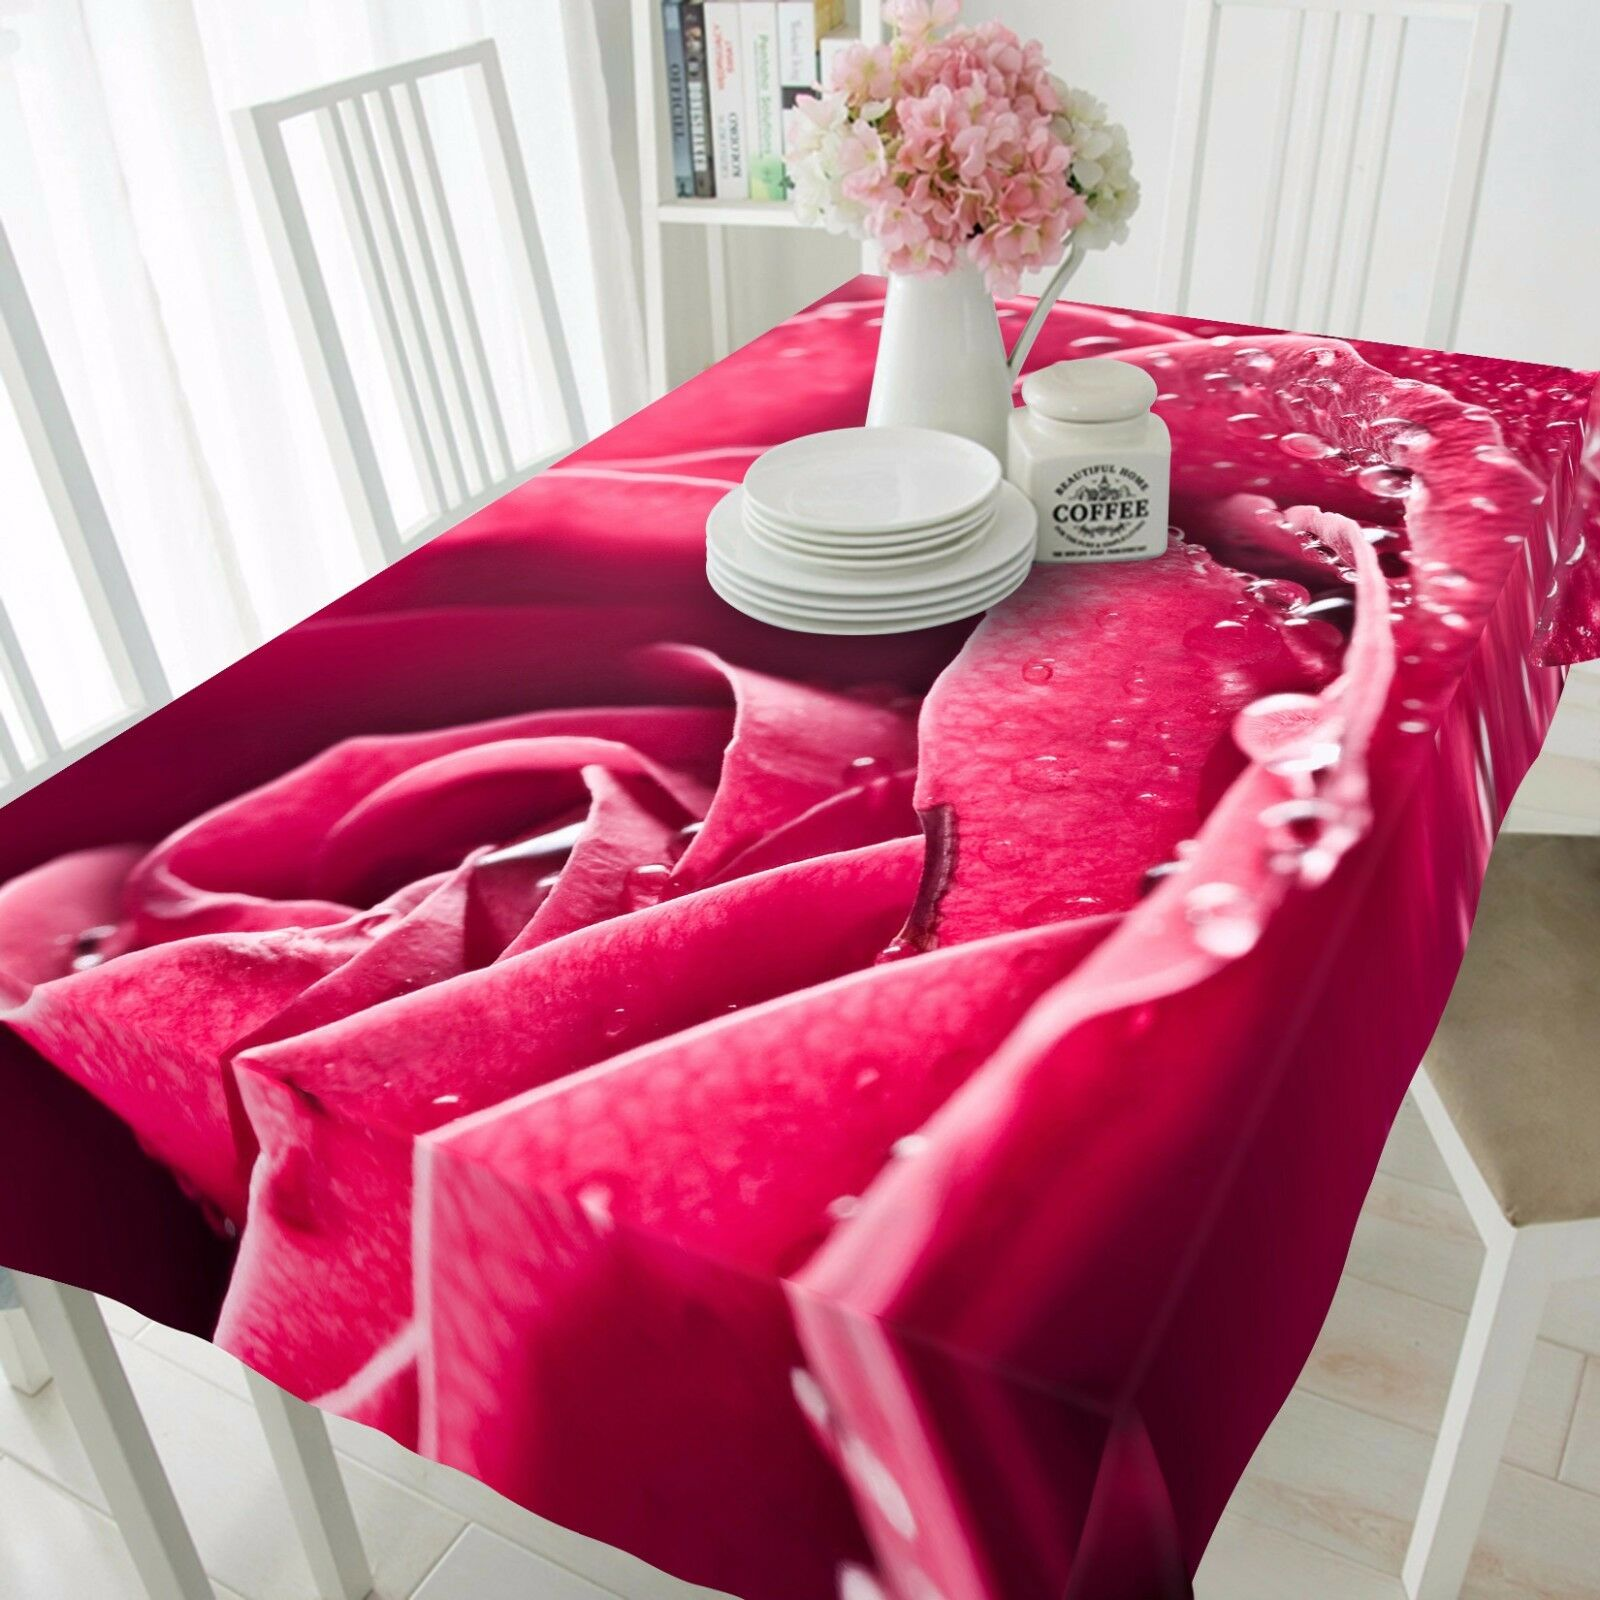 3D Red pink 77 Tablecloth Table Cover Cloth Birthday Party Event AJ WALLPAPER UK